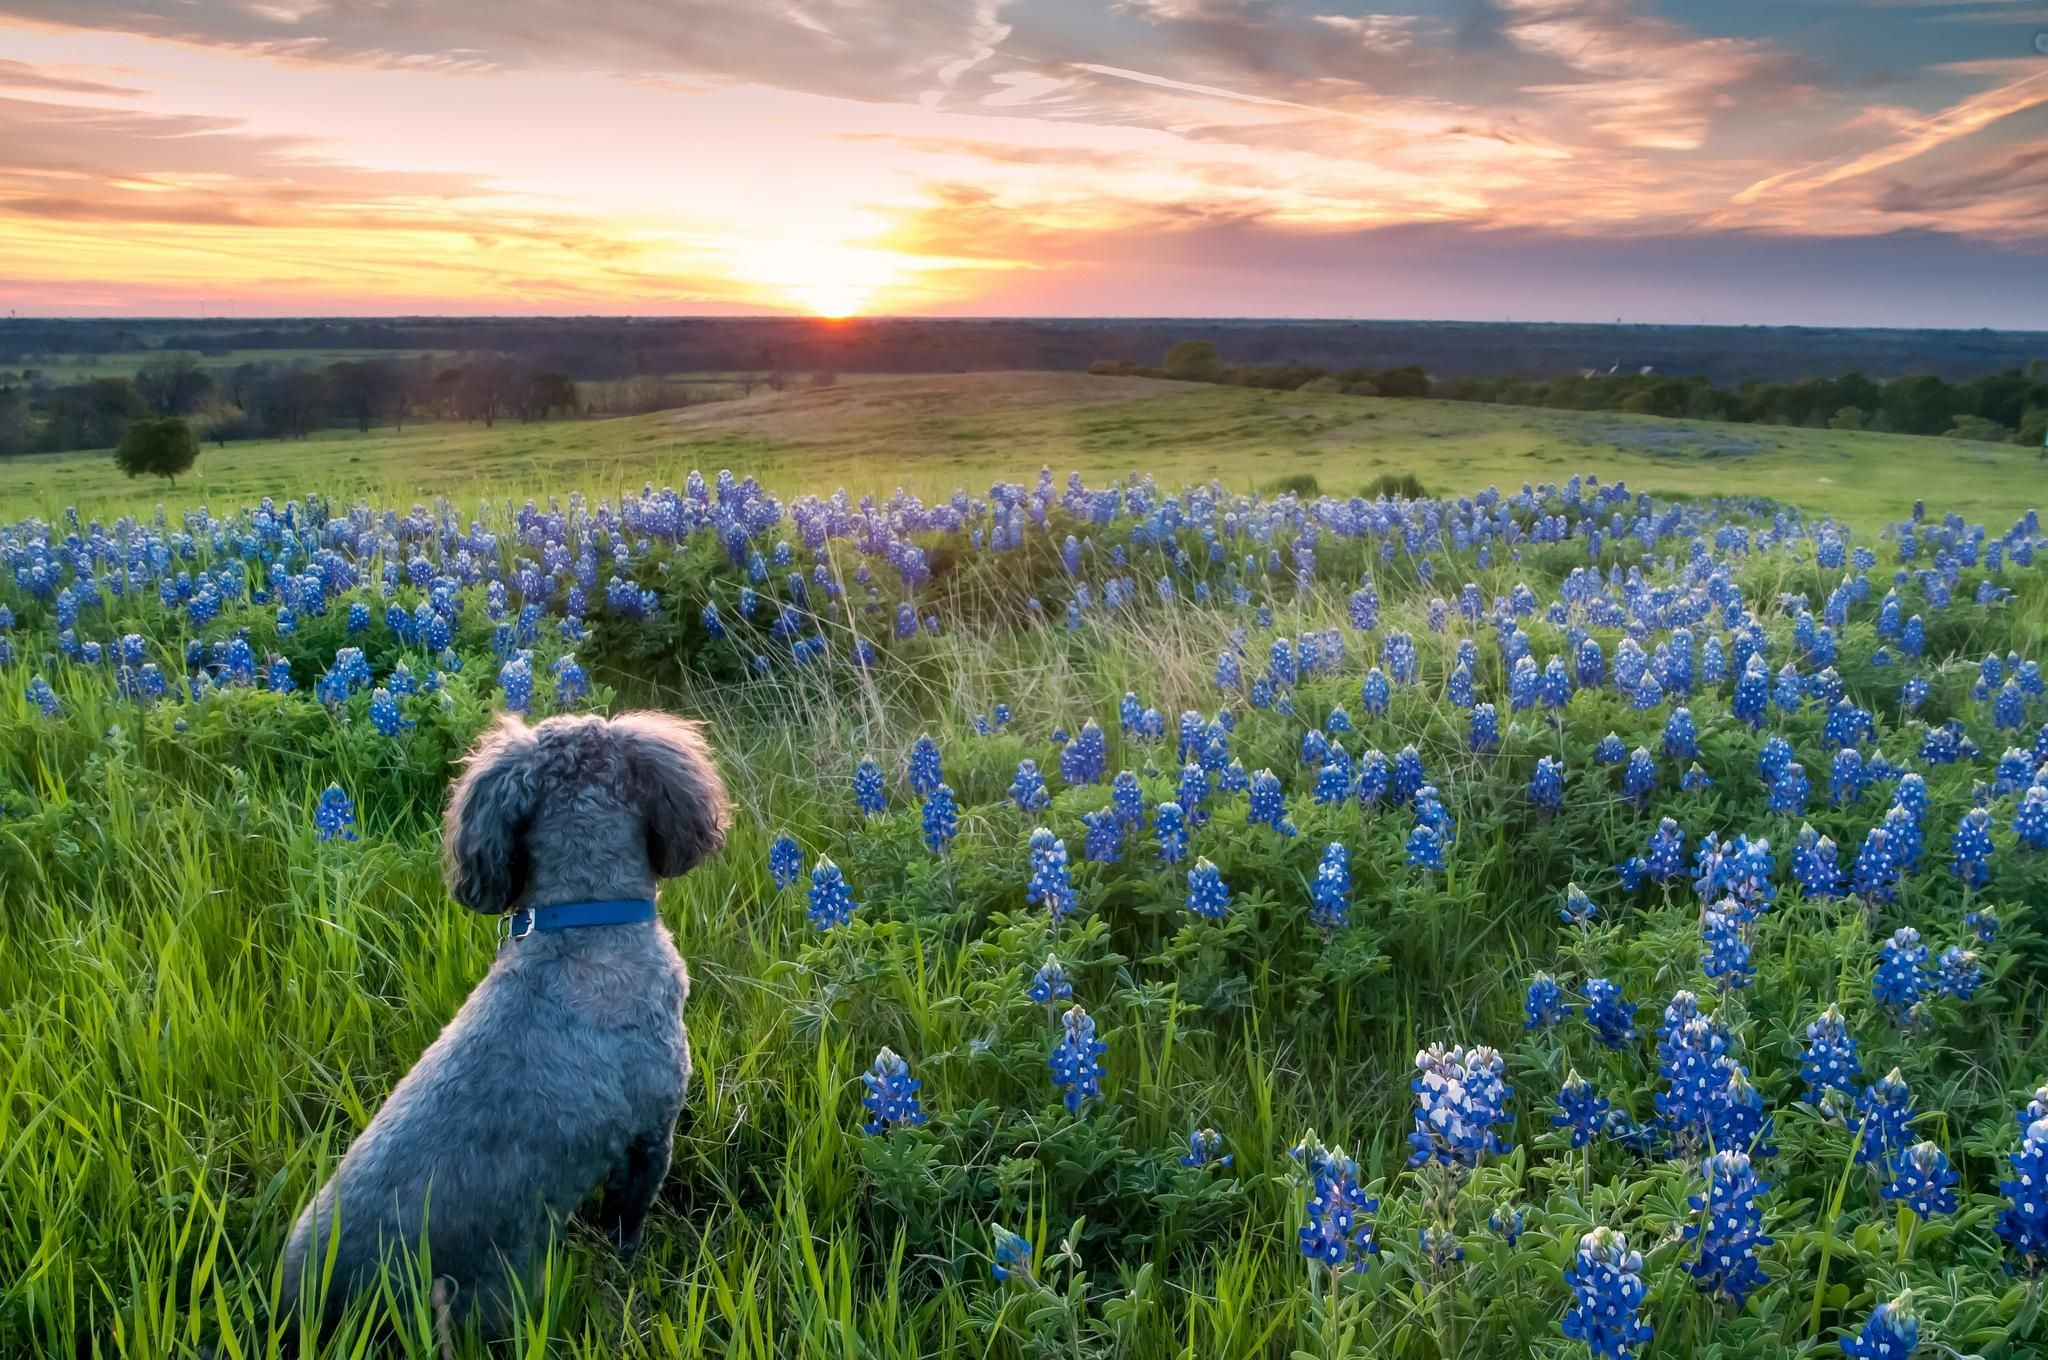 """Res: 2048x1360, On an afternoon vist to Sugar Ridge Rd in Ennis to shoot the Bluebonnets I  was able to capture my traveling buddy """"Big Boy"""" in those beautiful Texas  ..."""